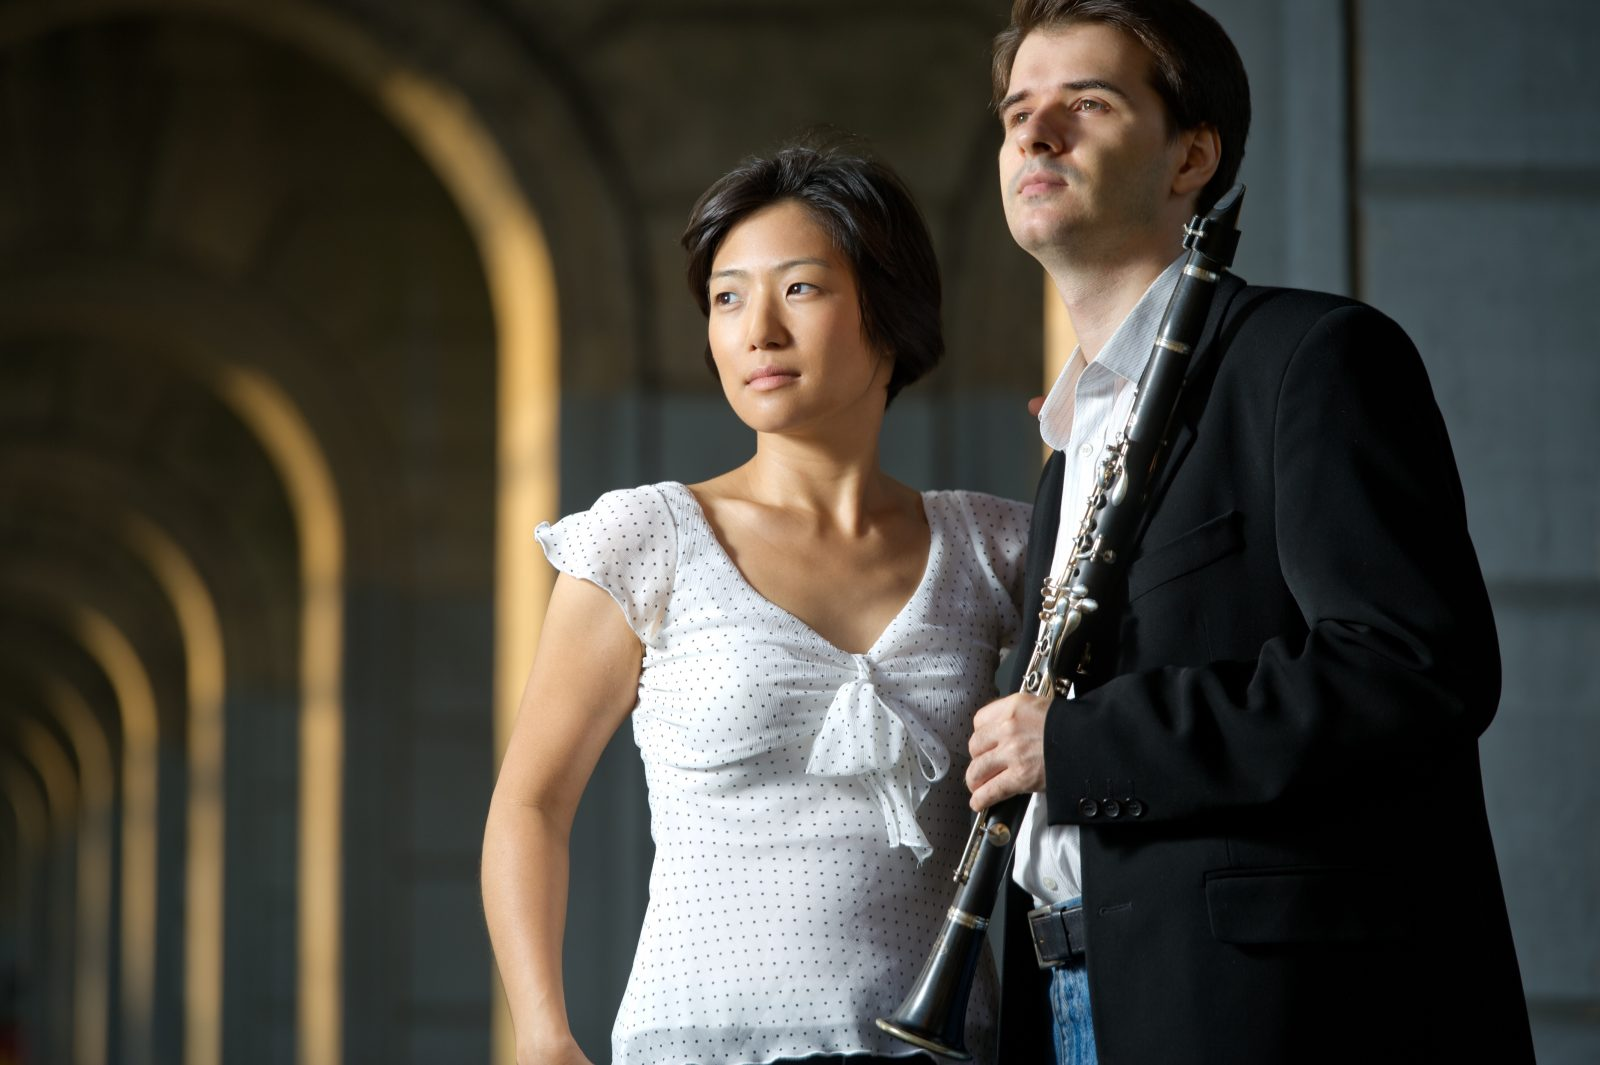 Misuzu Tanaka and Maksim Shtrykov are performing at the Friends of Vienna. (Photo by Denis Gostev)